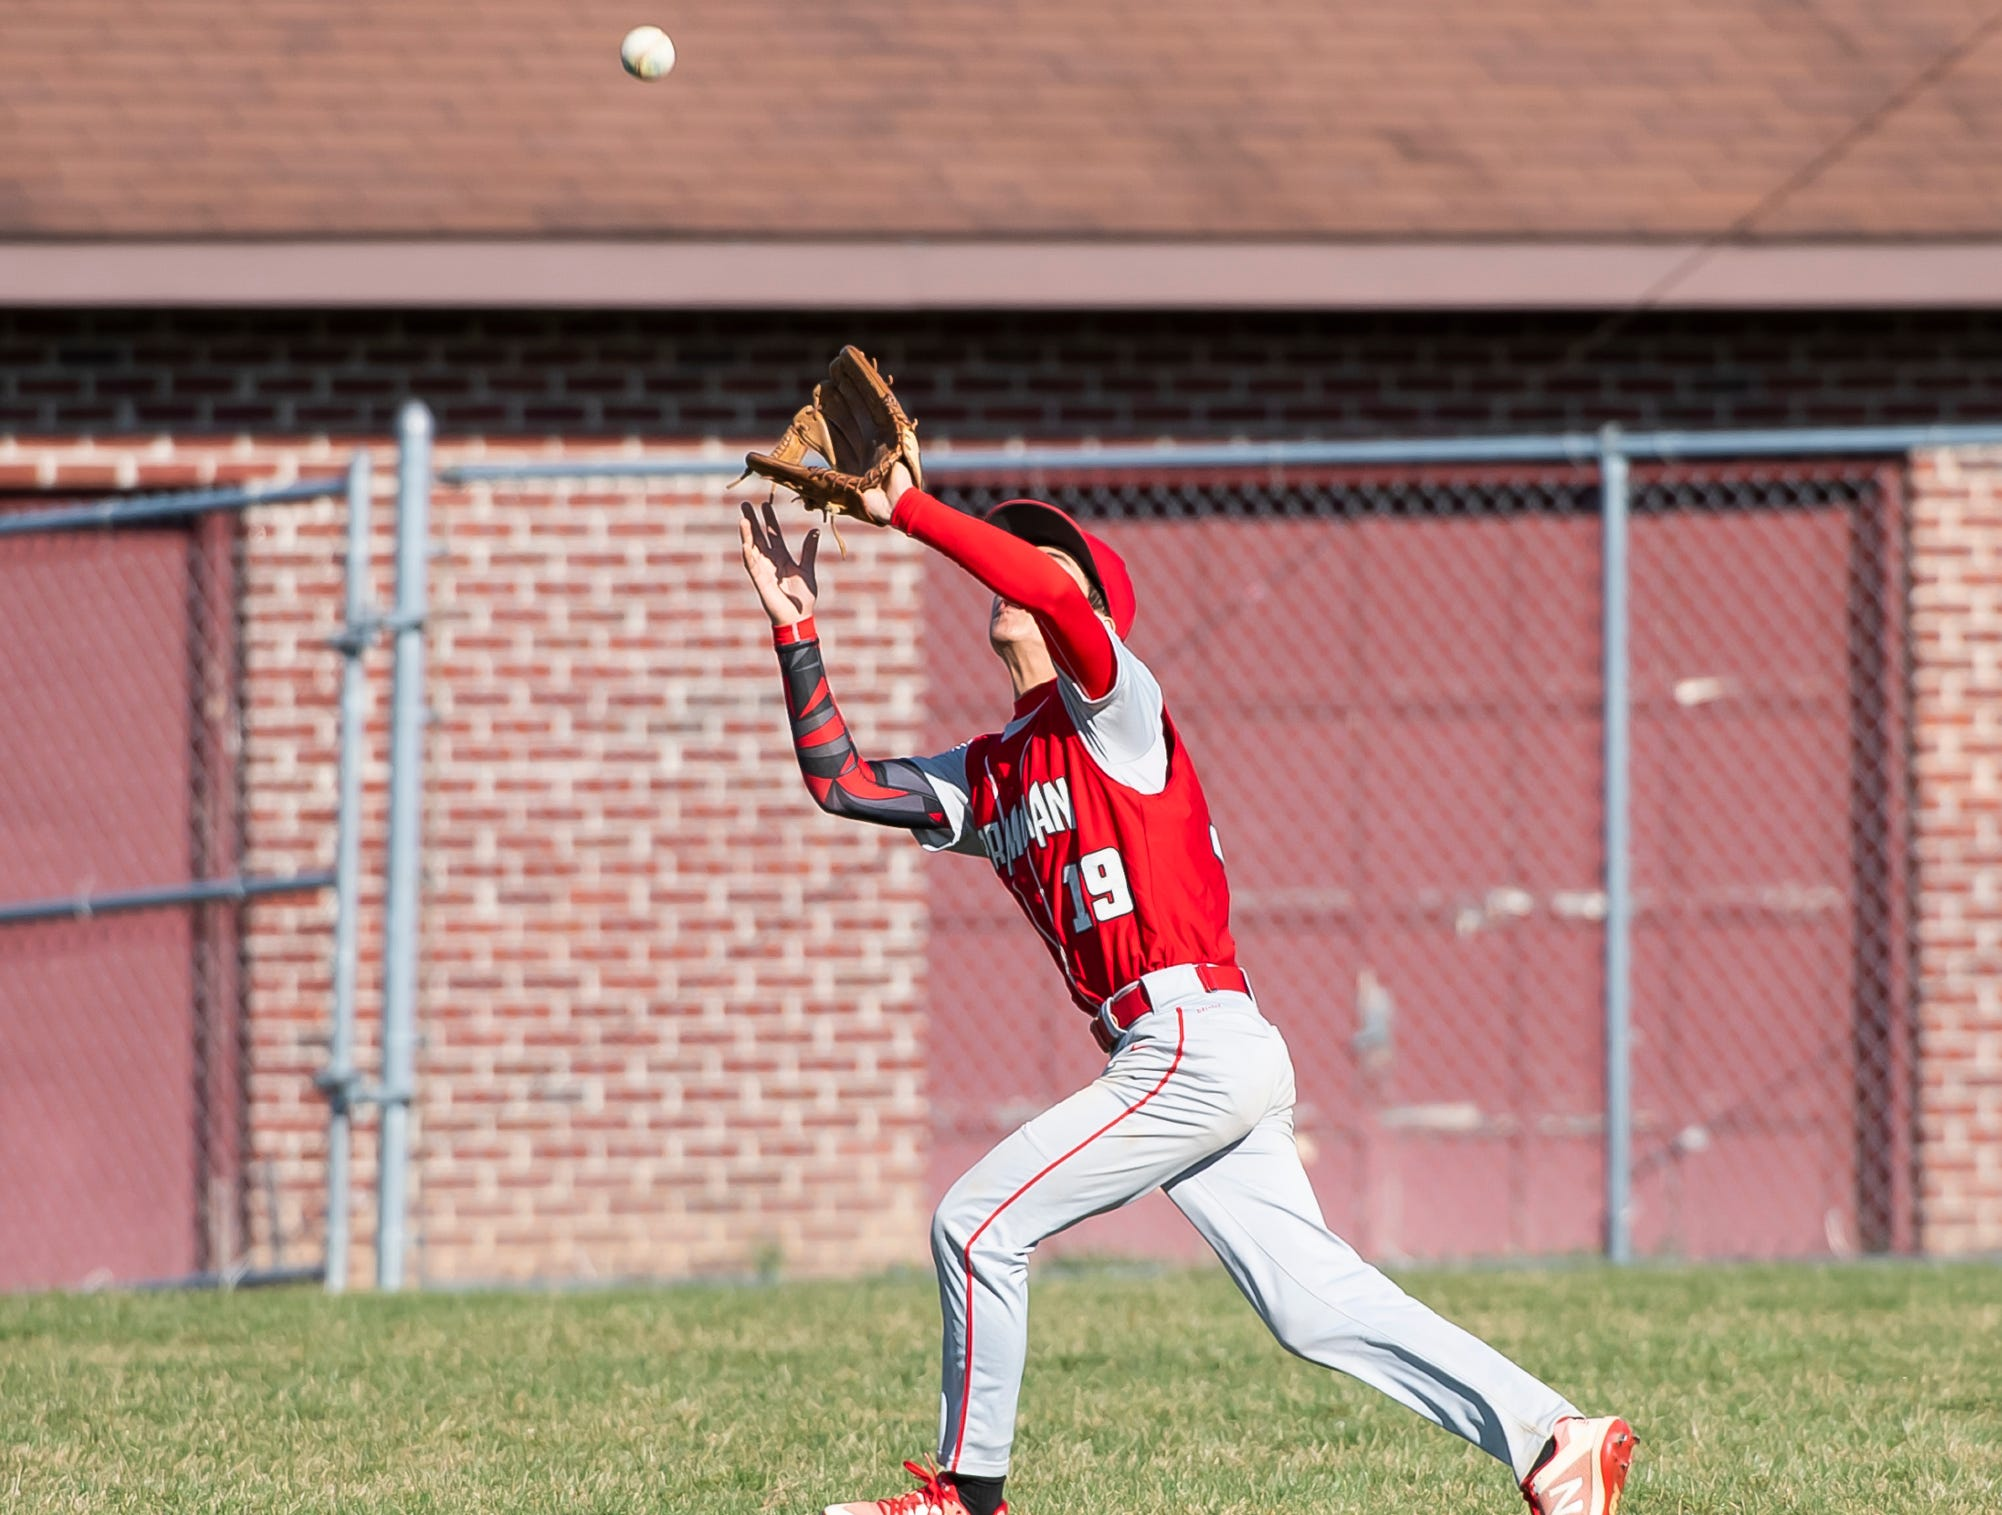 Bermudian Springs' Justice Taylor catches a fly ball during a YAIAA baseball game against West York on Wednesday, April 3, 2019. The Eagles fell 14-11.